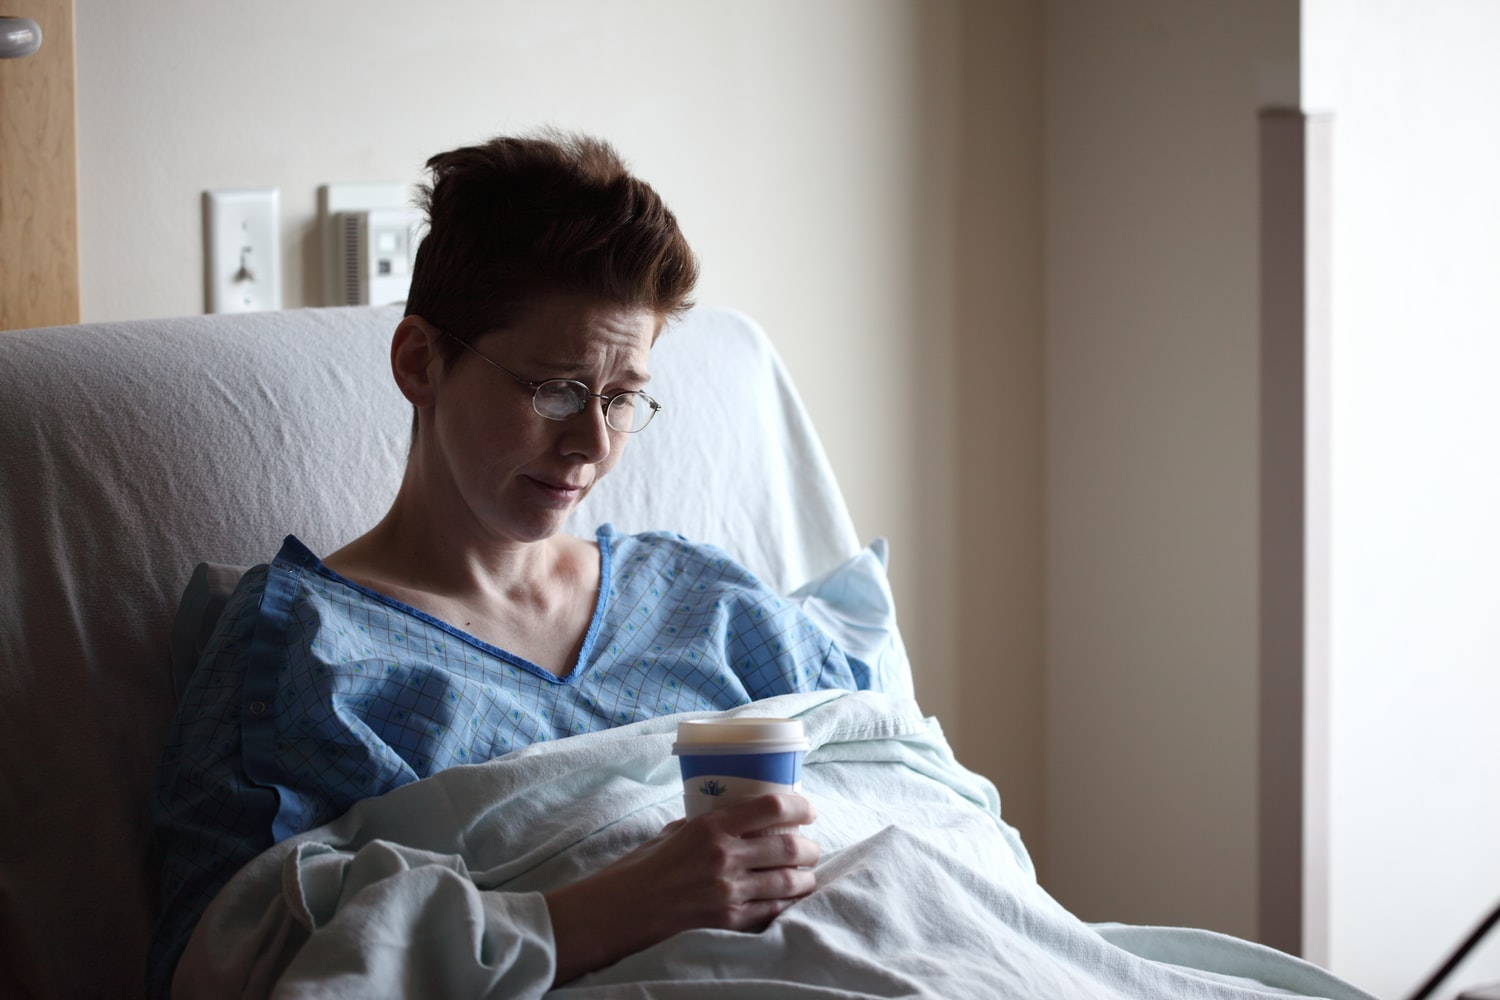 Female psychiatric patient in gown laying on hospital bed